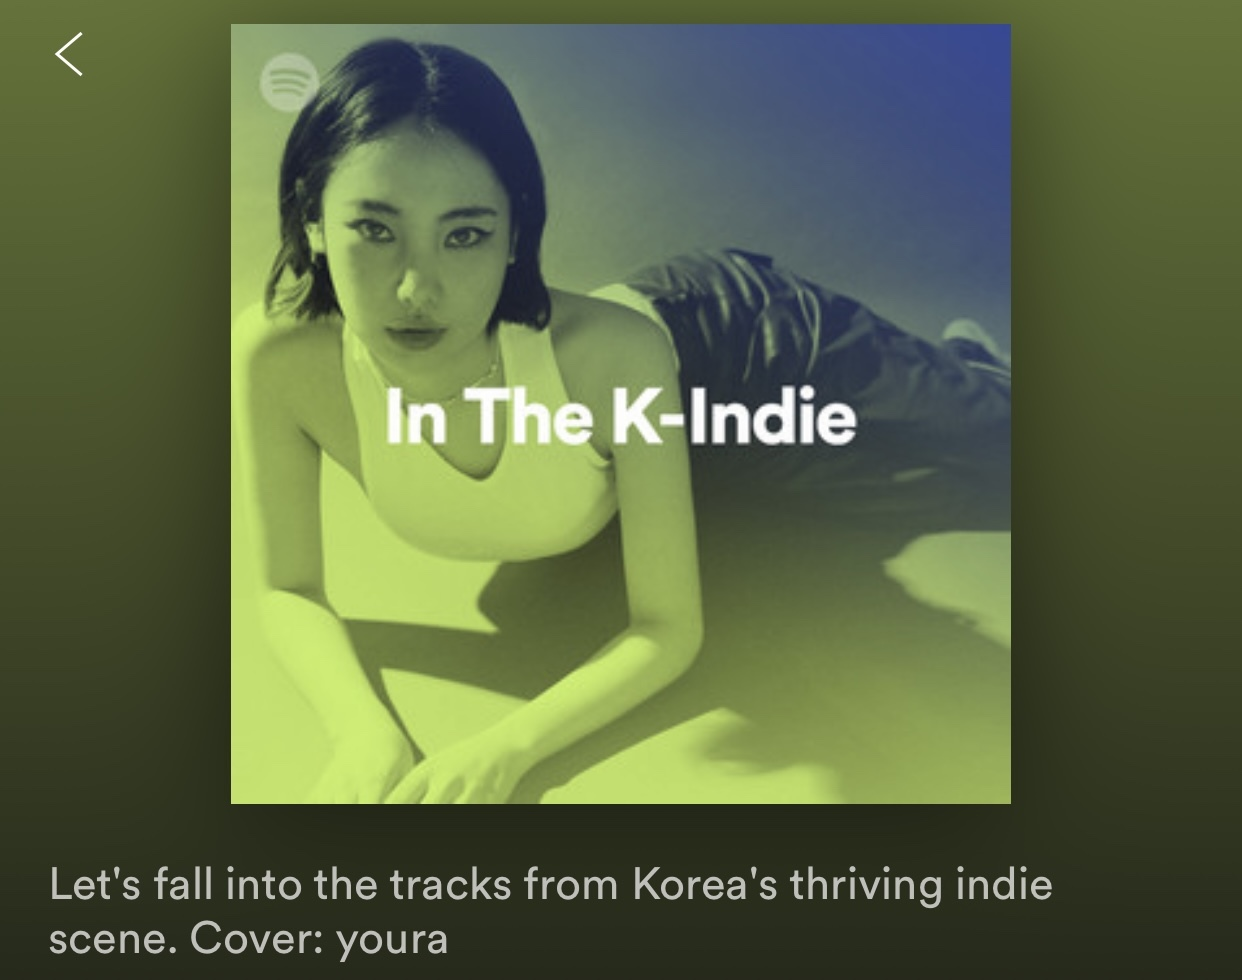 """In The K-Indie: Spotify's """"In The K-Indie"""" playlist cover features Korean musician Youra (Spotify)"""